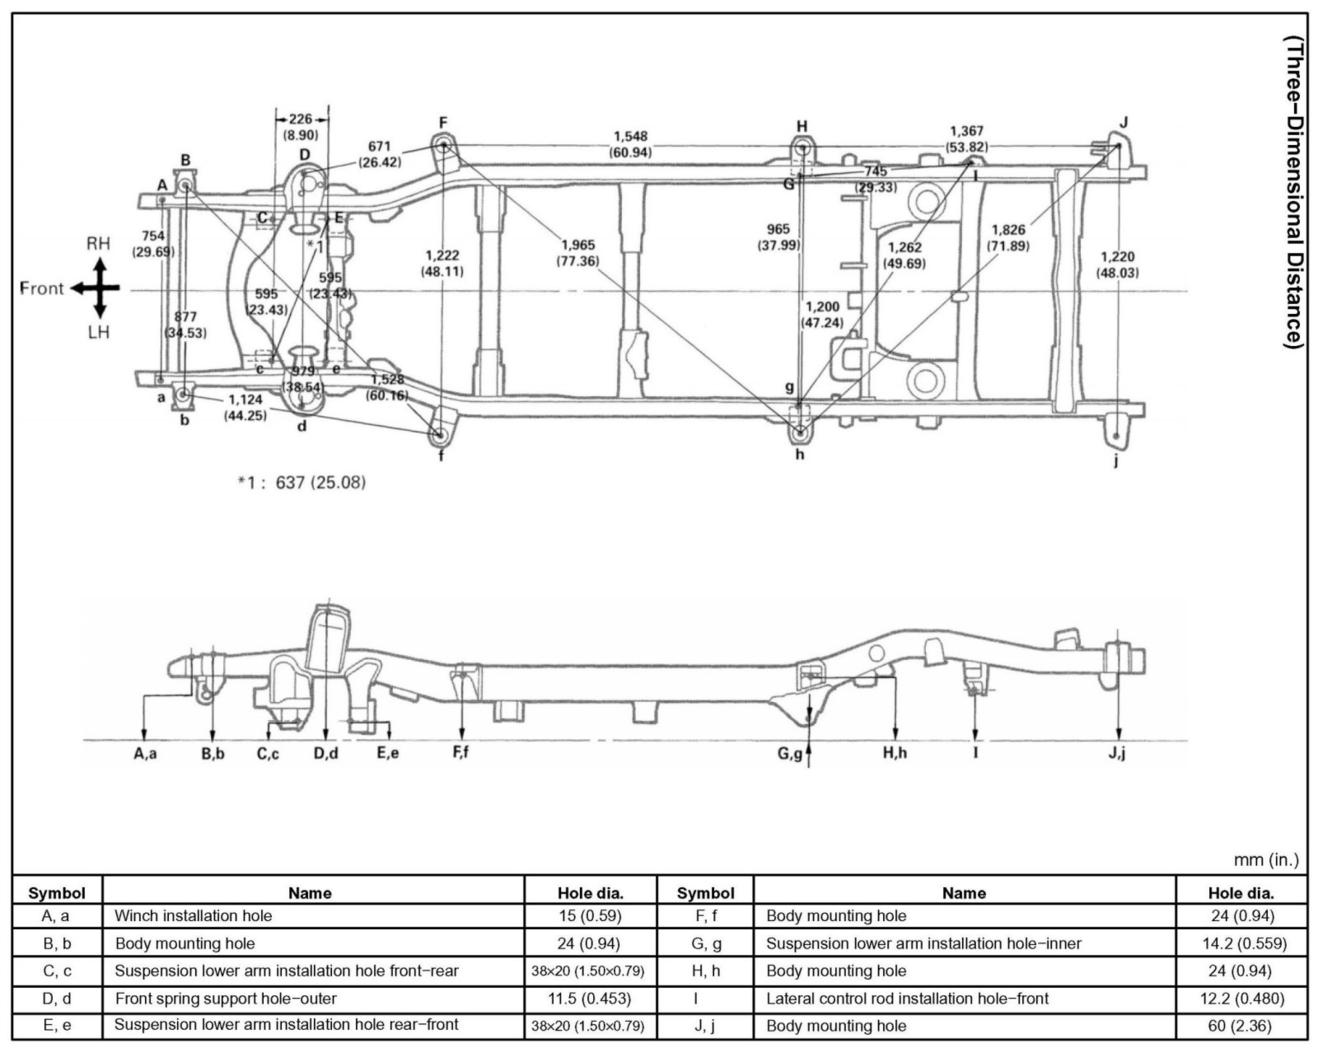 2003 Ford Ranger Frame Replacement Rear Chassis Wiring Diagram 2000 F250 Explained Diagrams Rh Sbsun Co Specs